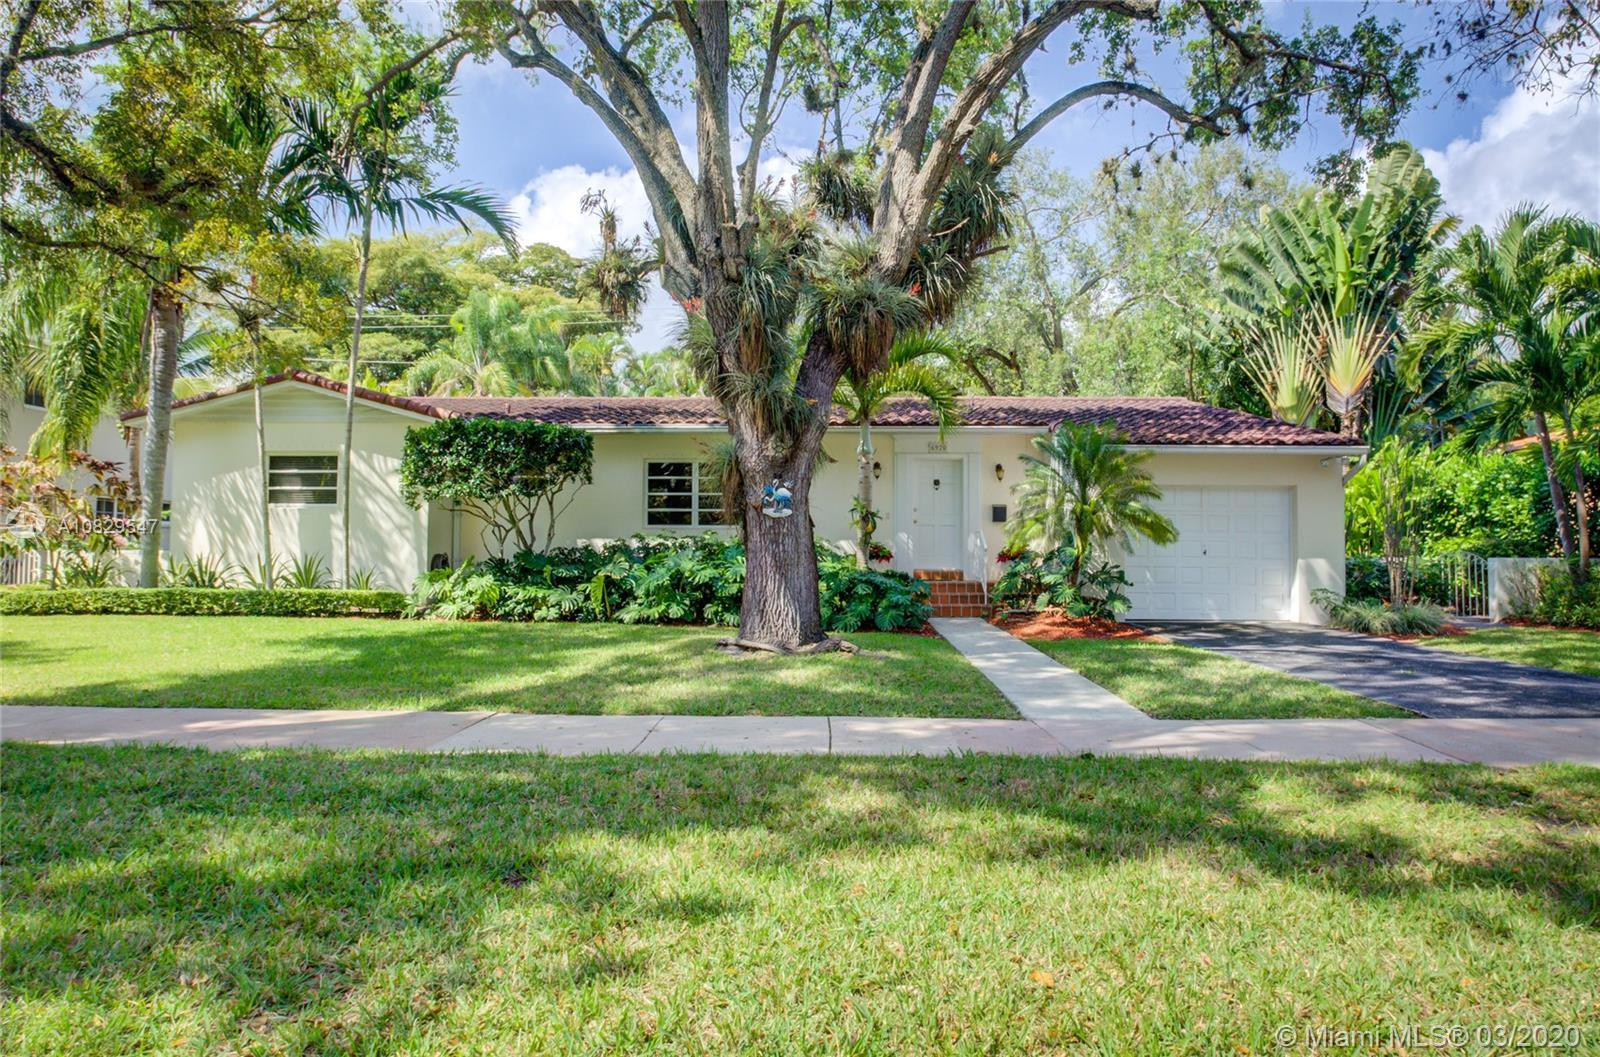 Nestled in the highly coveted neighborhood of South Coral Gables, sits a charming 3-bedroom, 2-bathr